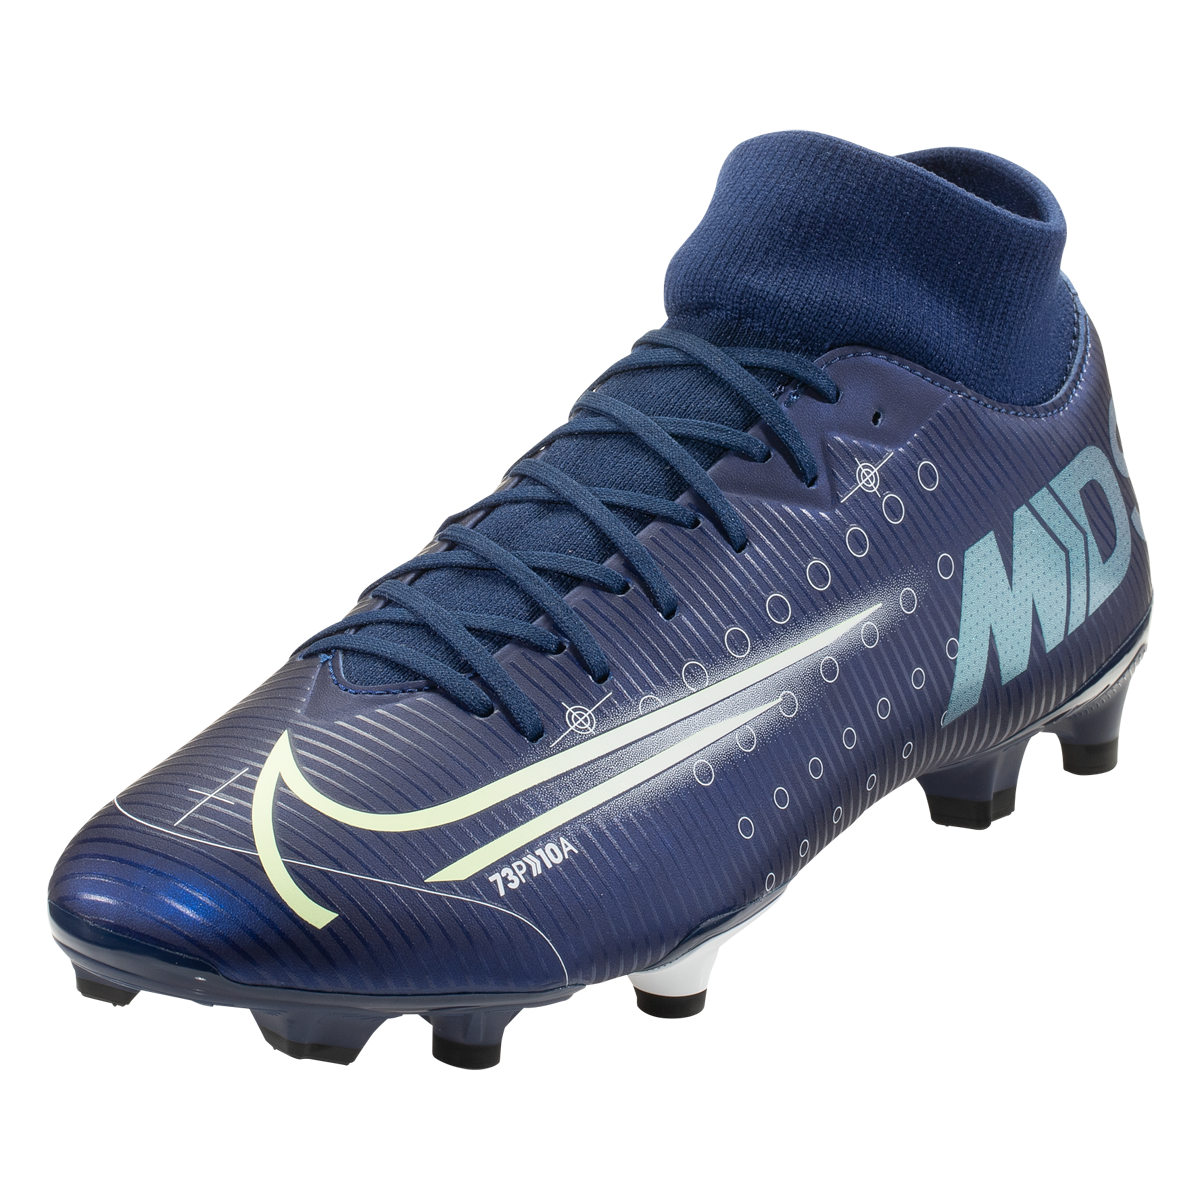 Nike Mercurial Superfly 7 Academy Mds Fg Mg Blue Void Metallic Silver White Black 5 Metallic Silver Superfly Black